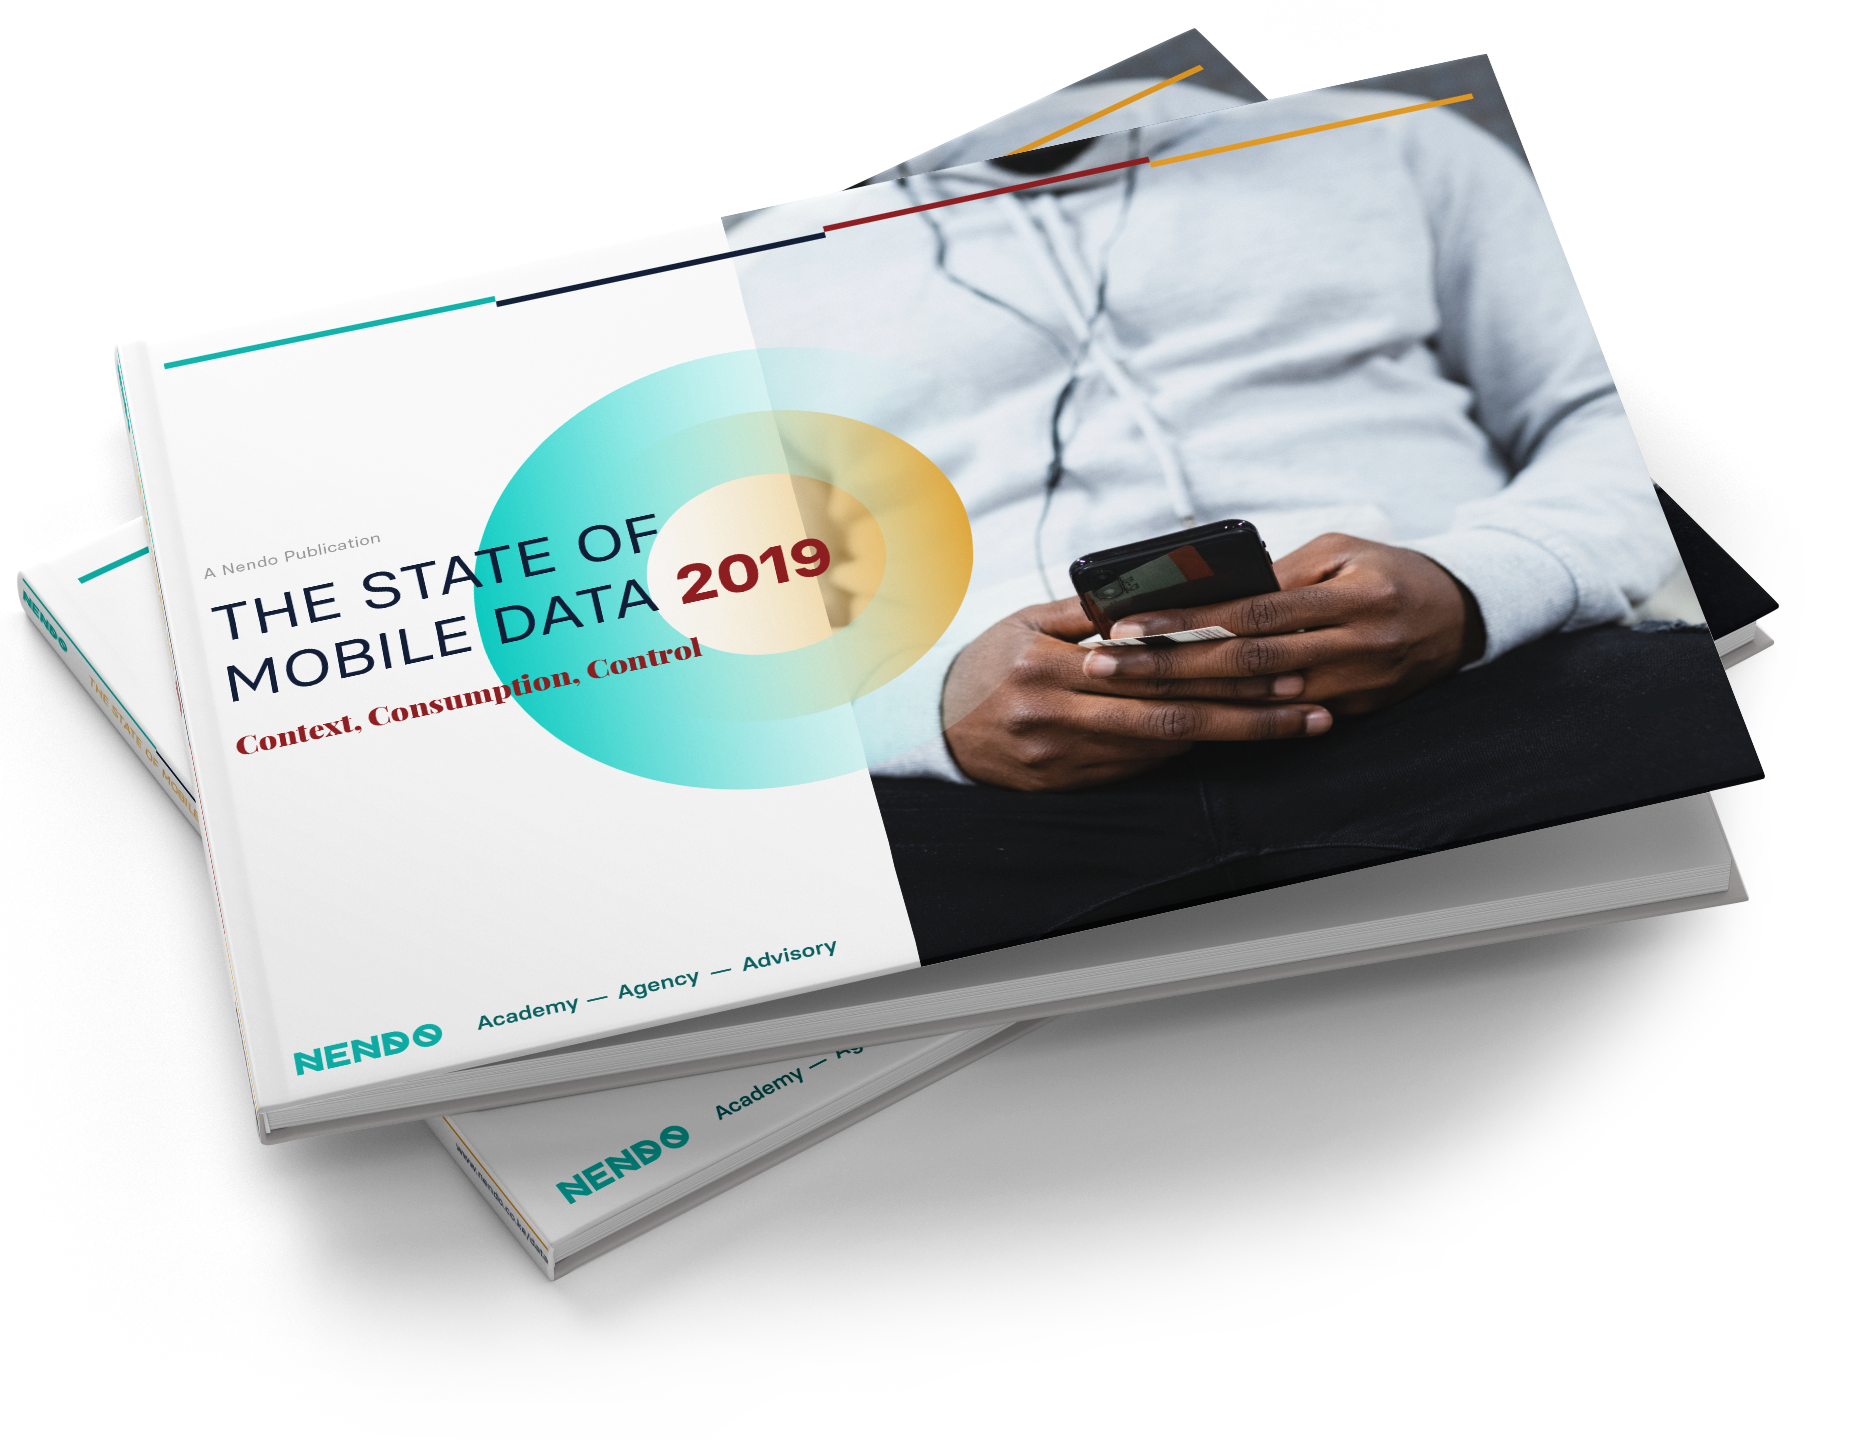 The State of Mobile Data 2019 Report